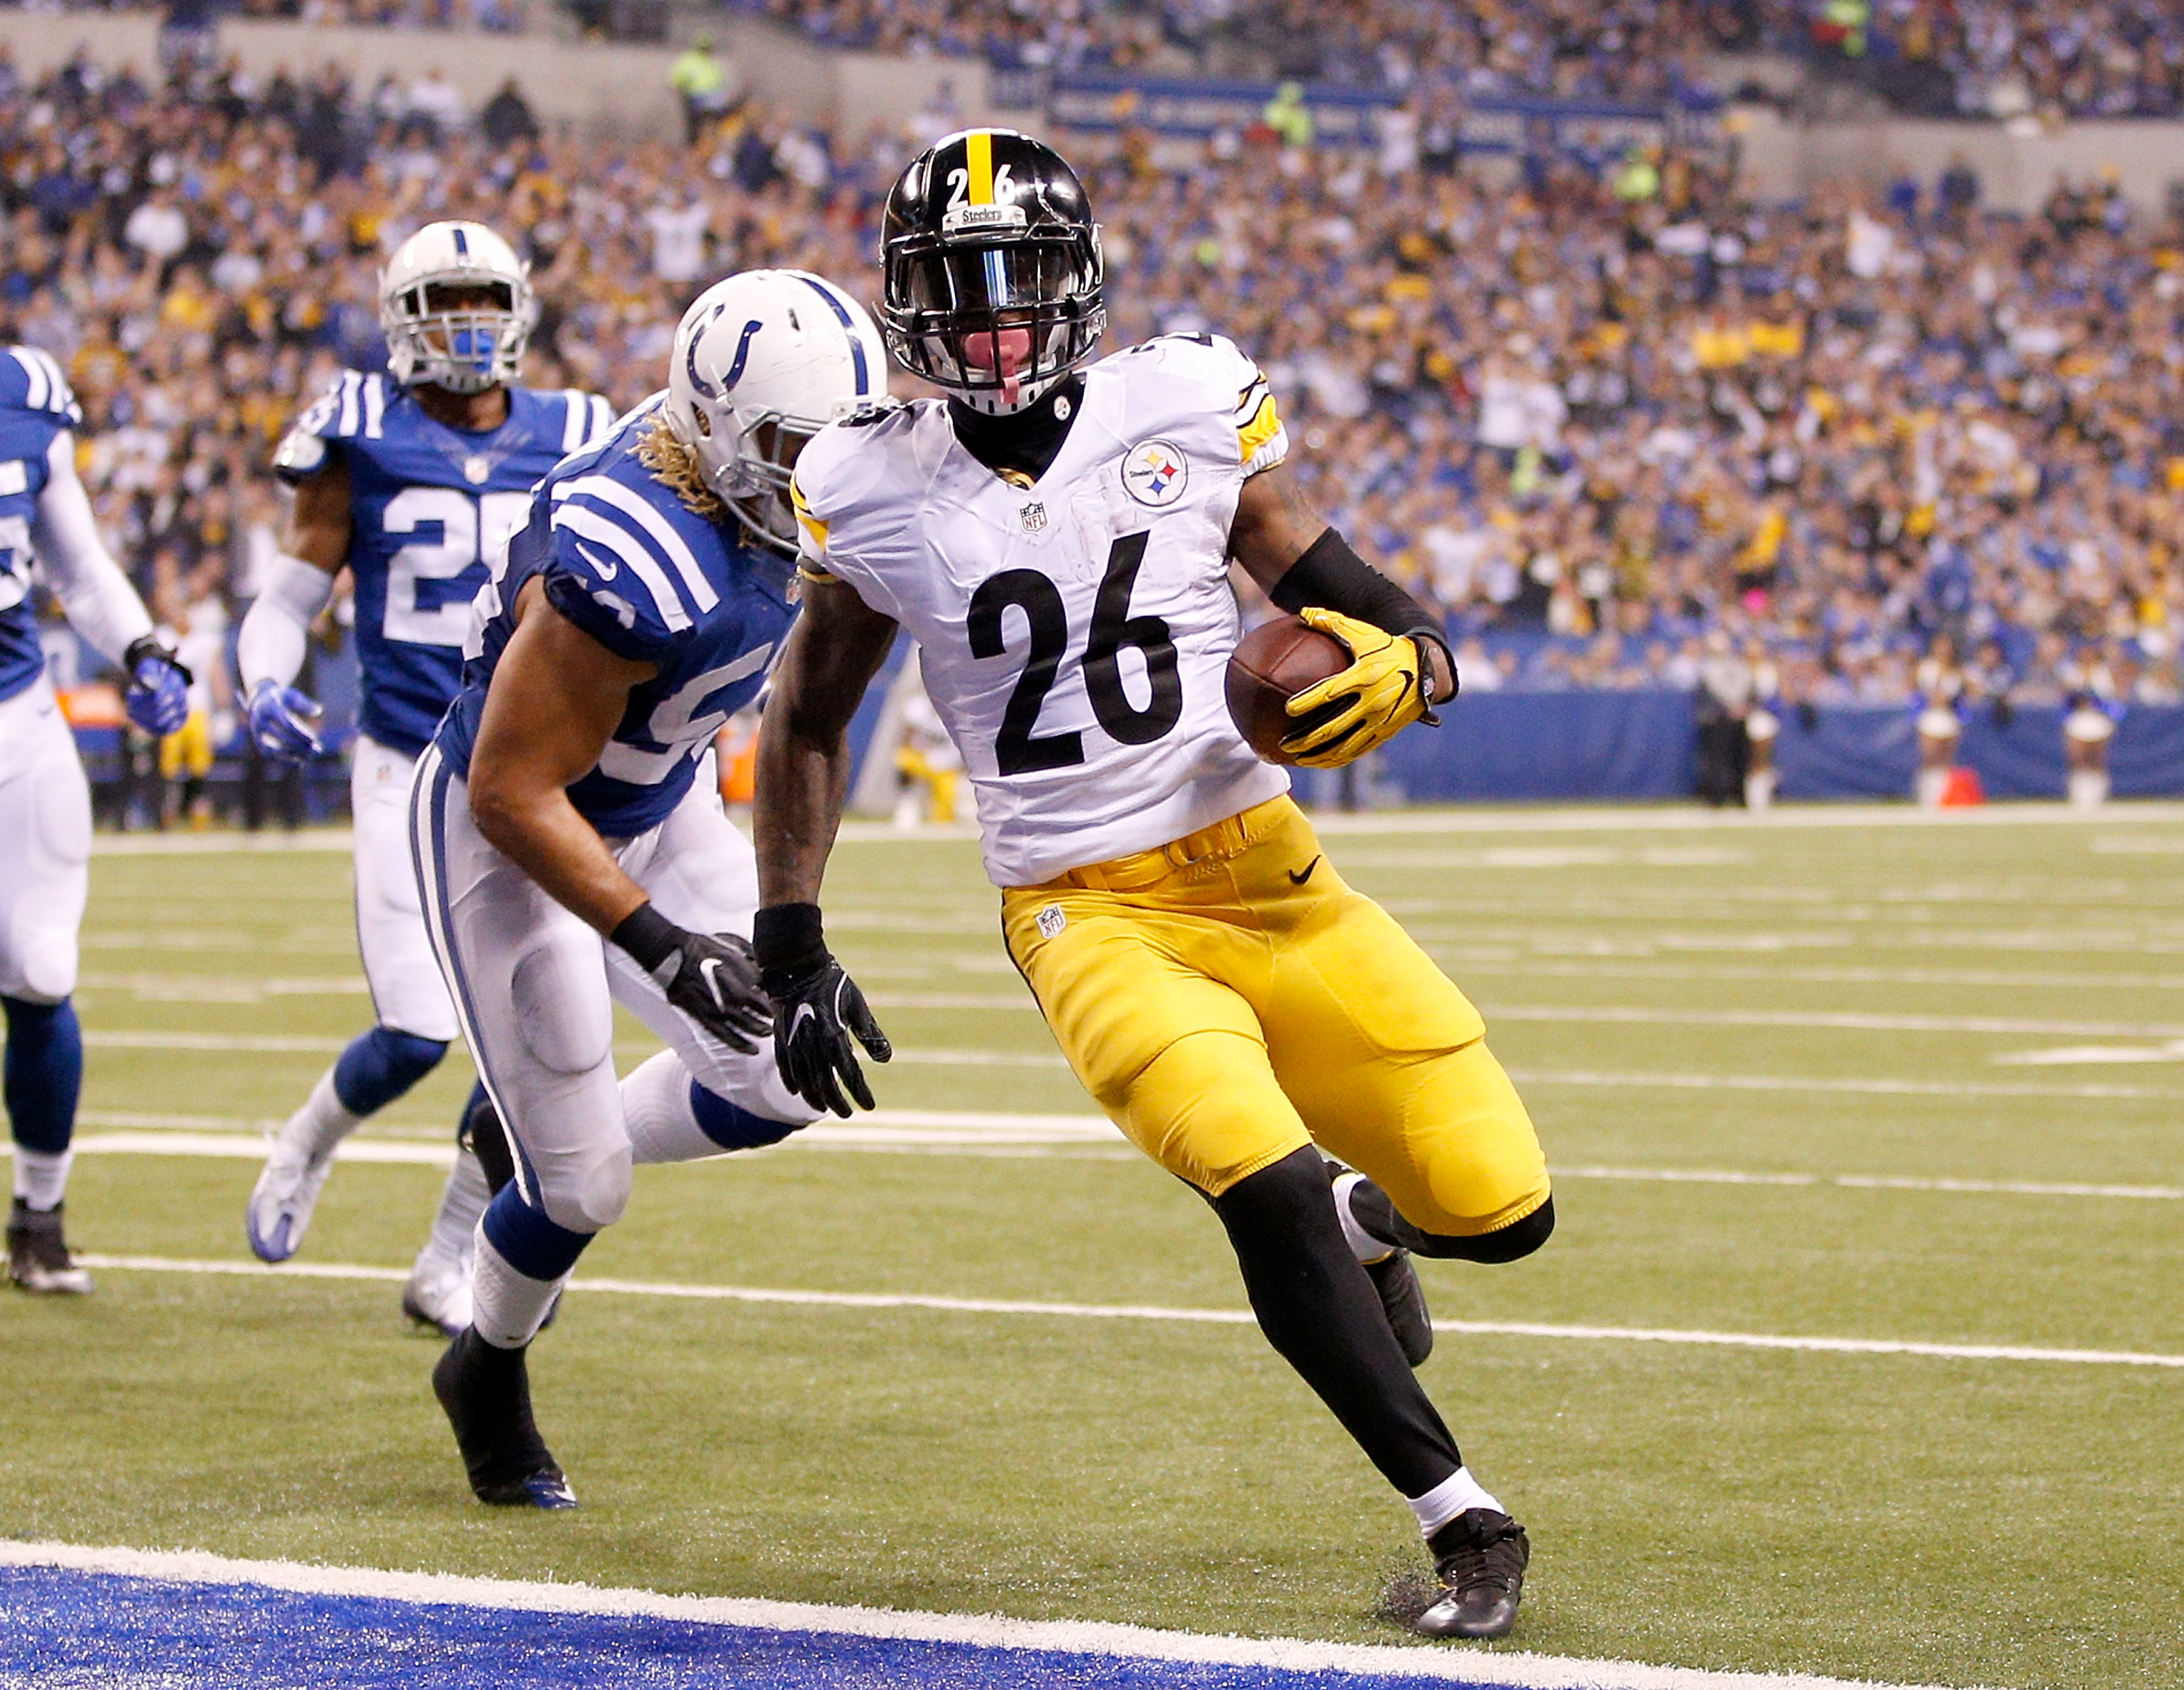 625638916-pittsburgh-steelers-v-indianapolis-colts.jpg